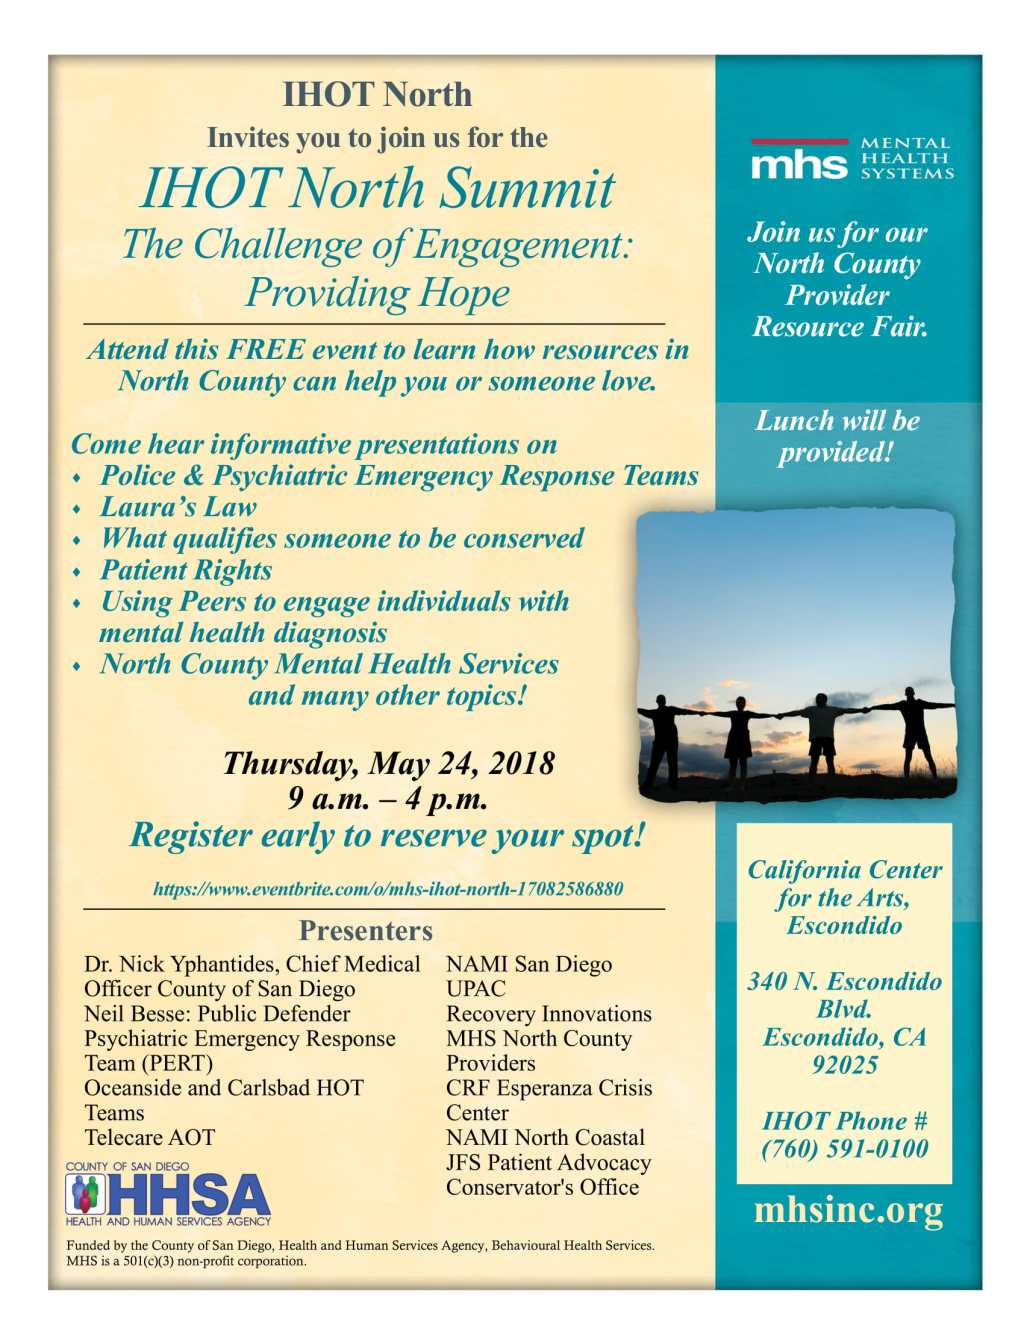 IHOT North Summit Flyer for 5-24-18 final-1